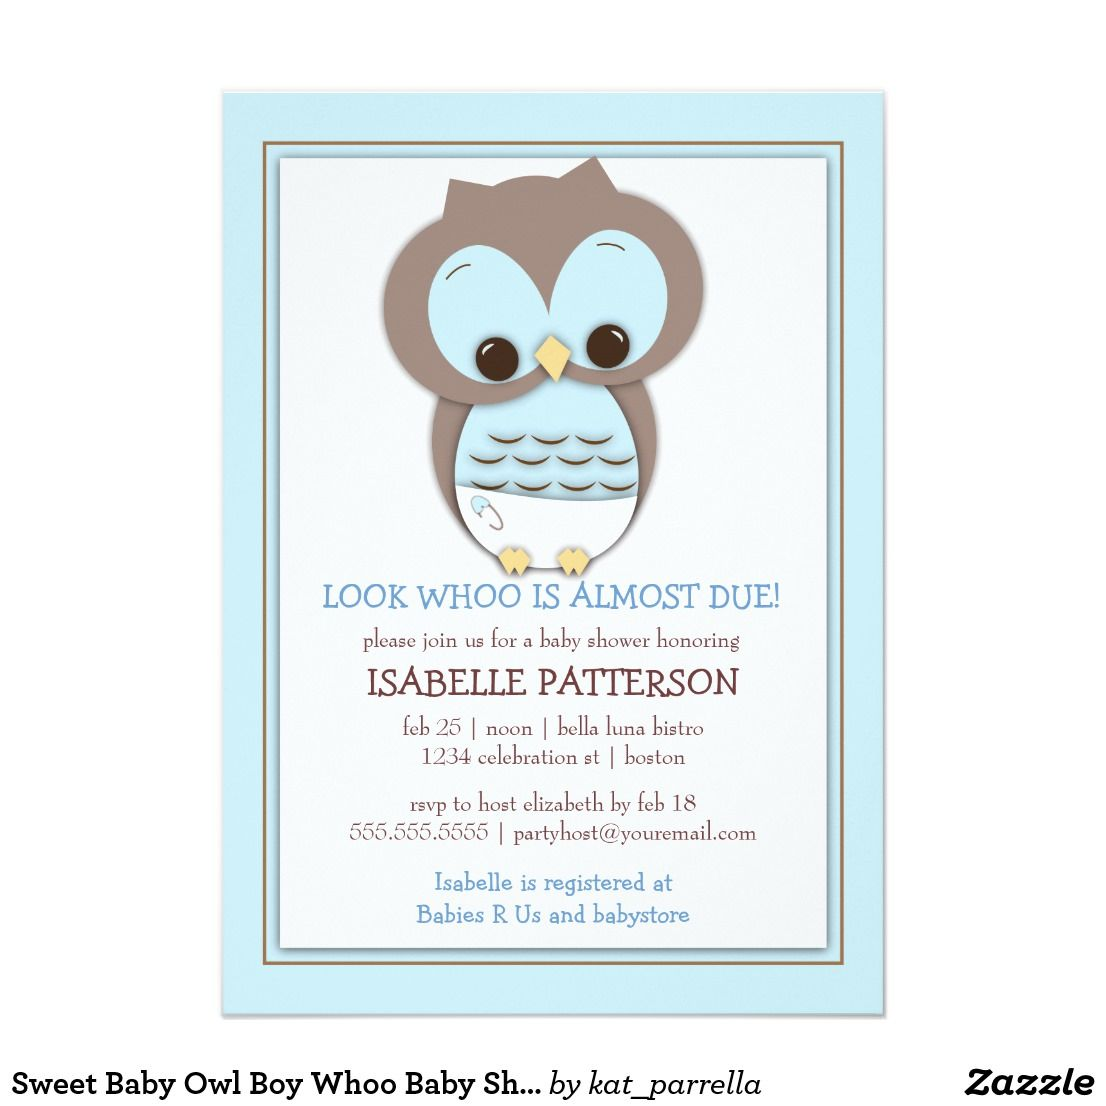 Sweet Baby Owl Boy Whoo Baby Shower Invitation A cute little baby ...